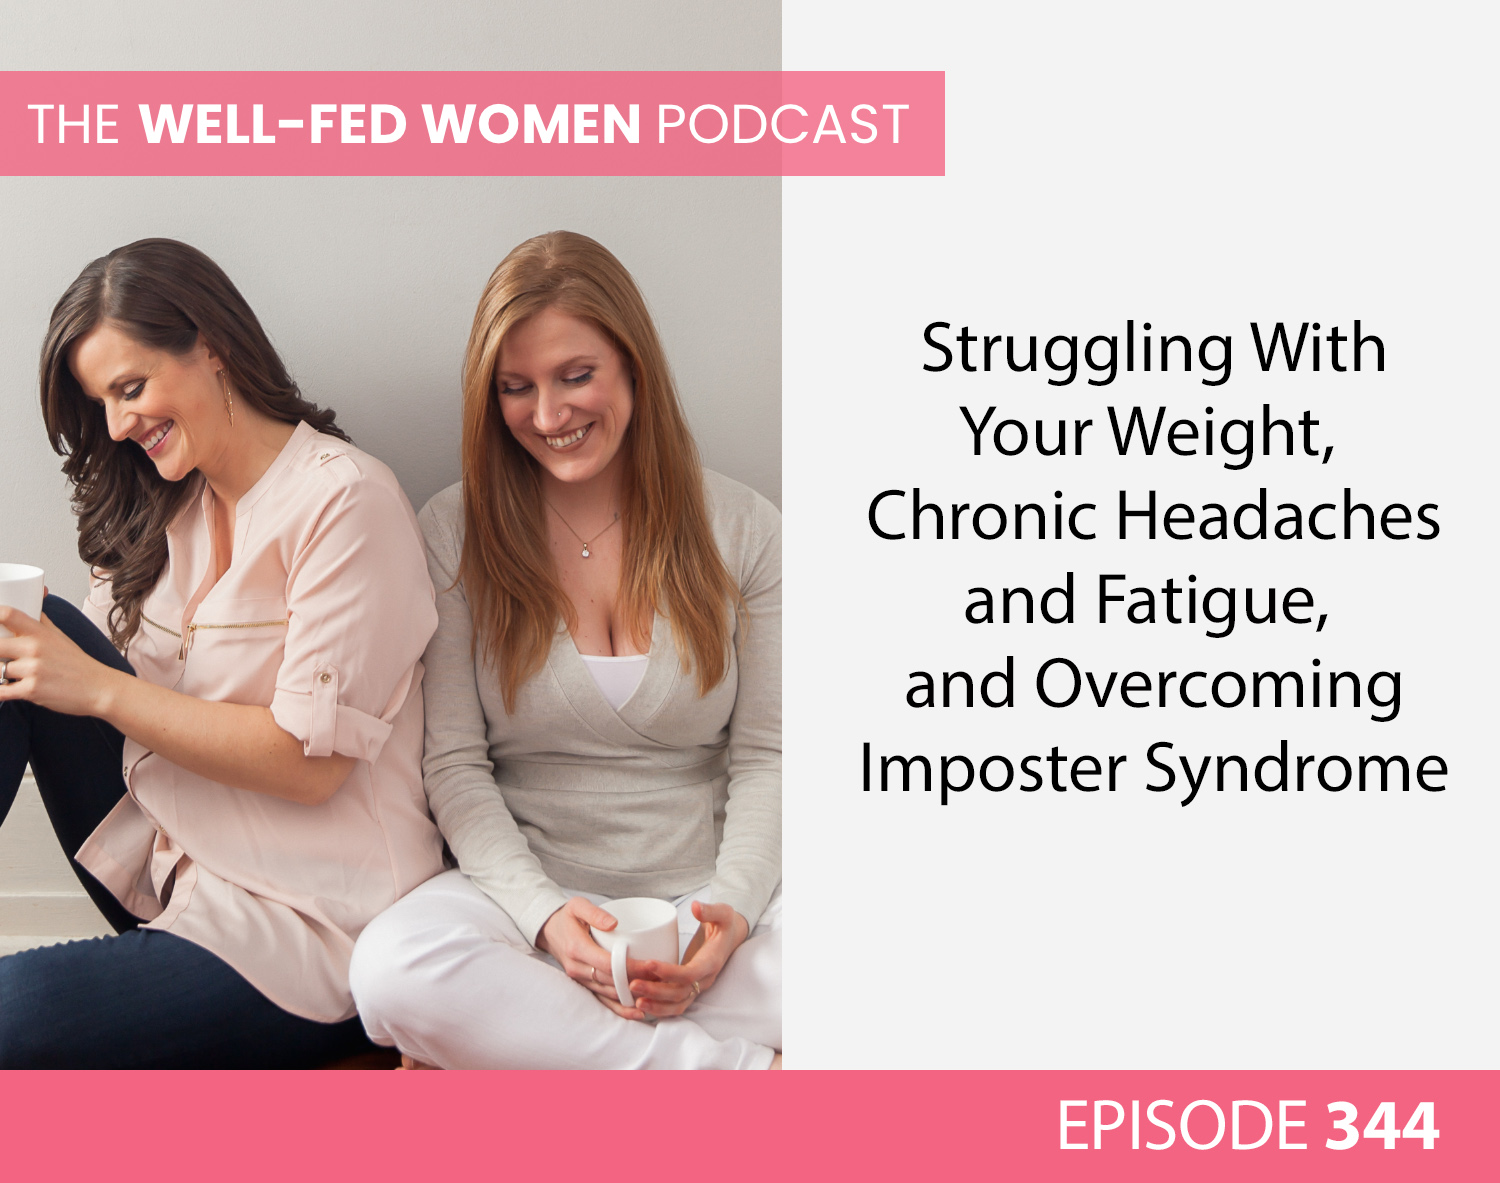 #344: Struggling With Your Weight, Chronic Headaches and Fatigue, and Overcoming Imposter Syndrome